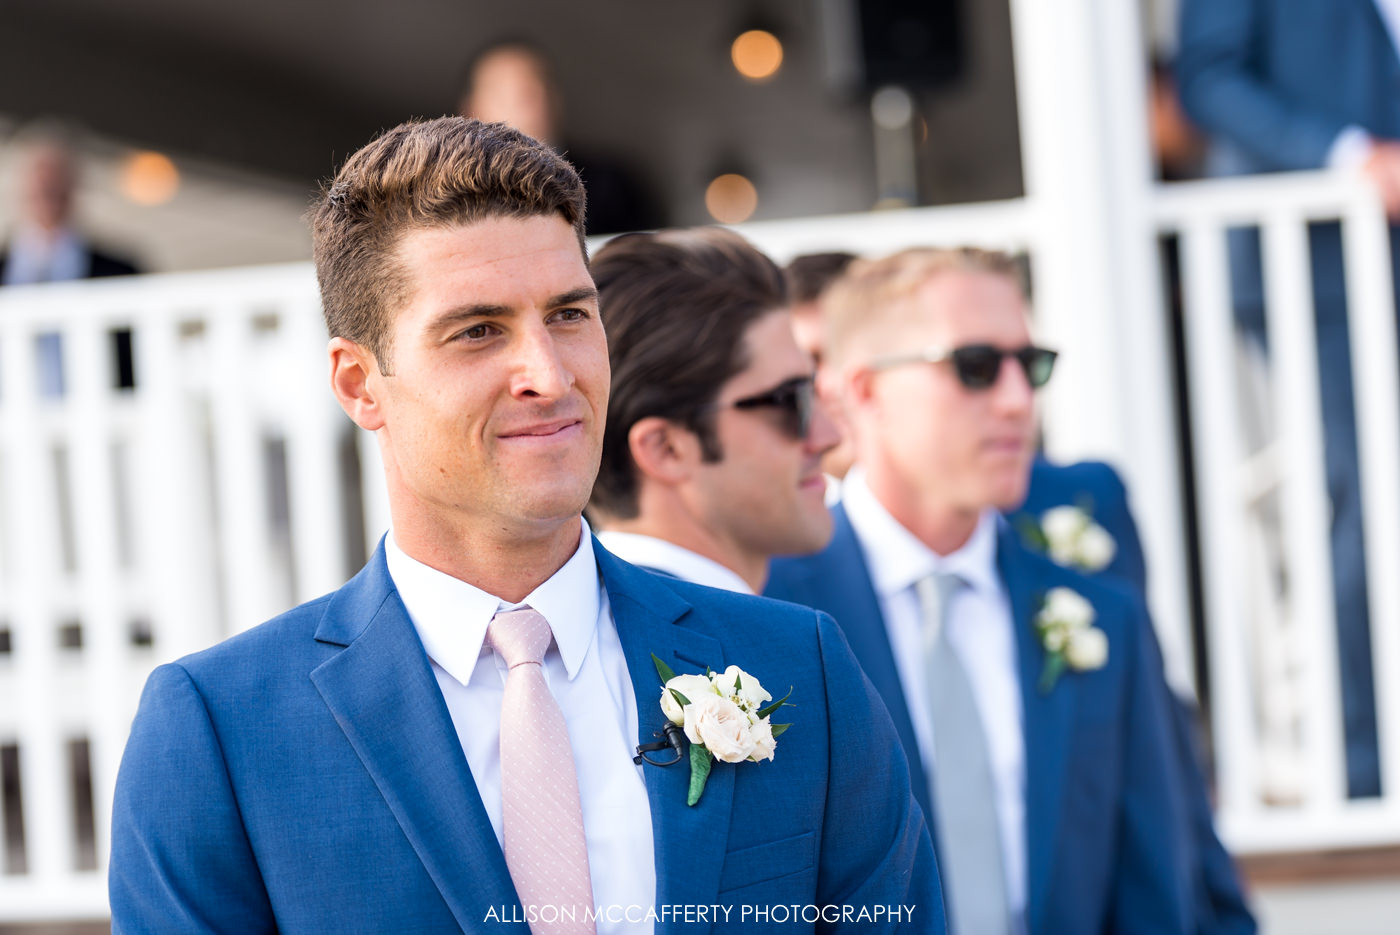 Groom in navy suit and pink tie